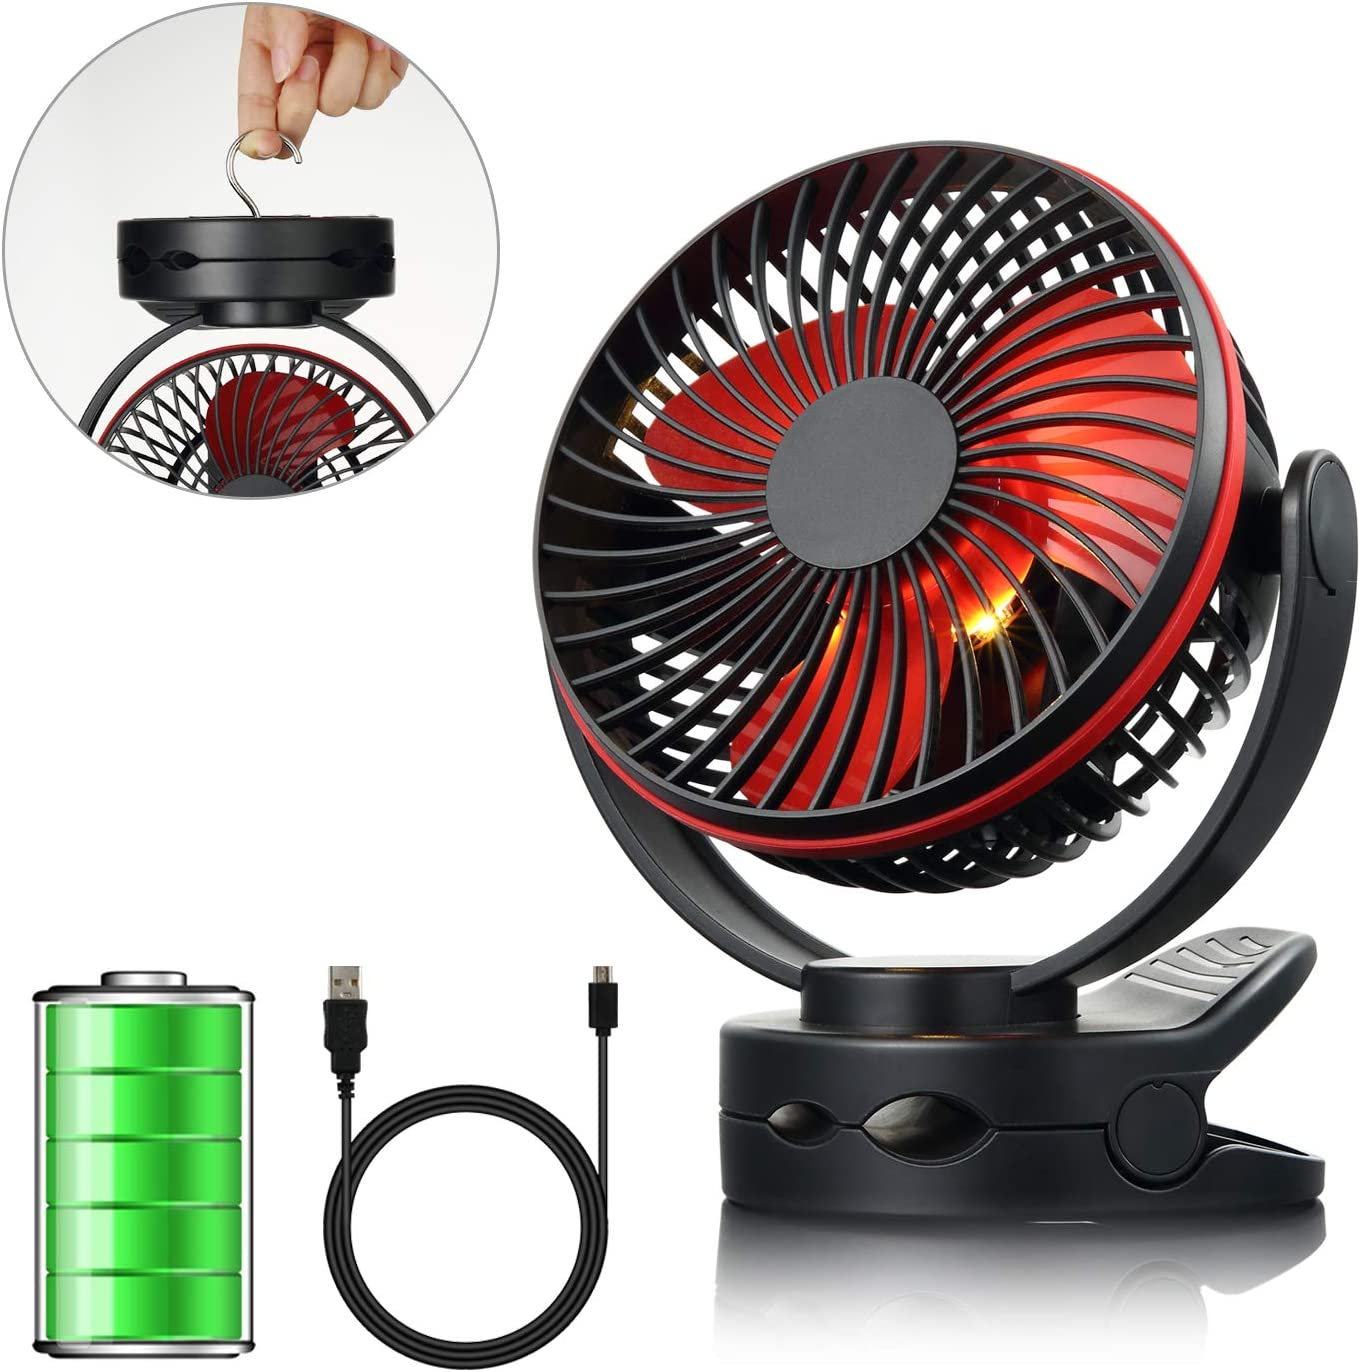 efluky 4 Speeds Desk Clip Fan with Two Adjustable Lights and 3600mAh Rechargeable Battery Operated Fan, Portable USB Fan for Baby Stroller Crib,Camping, BBQ Outdoor Indoor Activity, Black